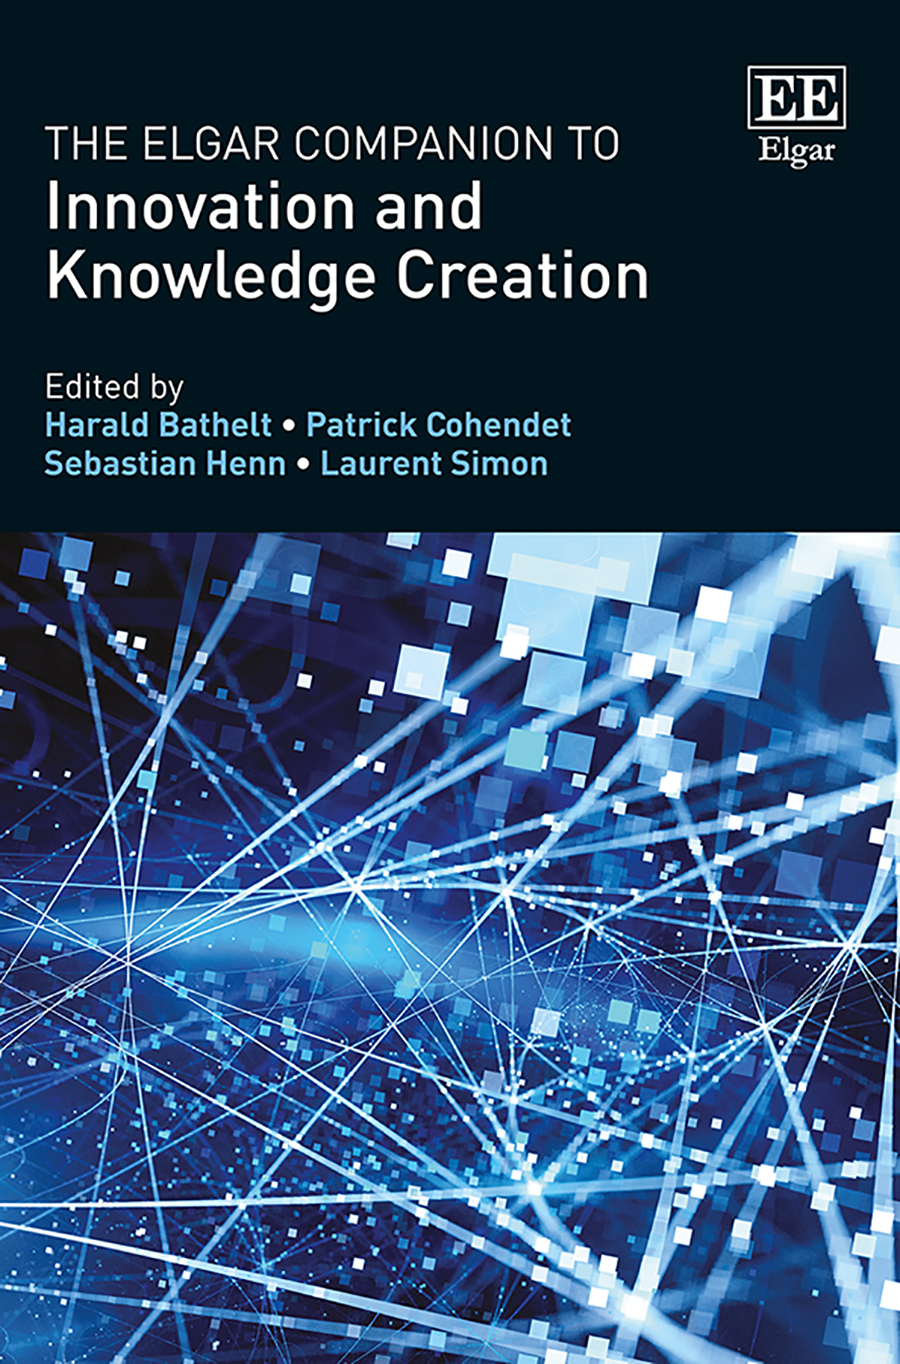 Download Ebook The Elgar Companion to Innovation and Knowledge Creation by Harald Bathelt Pdf